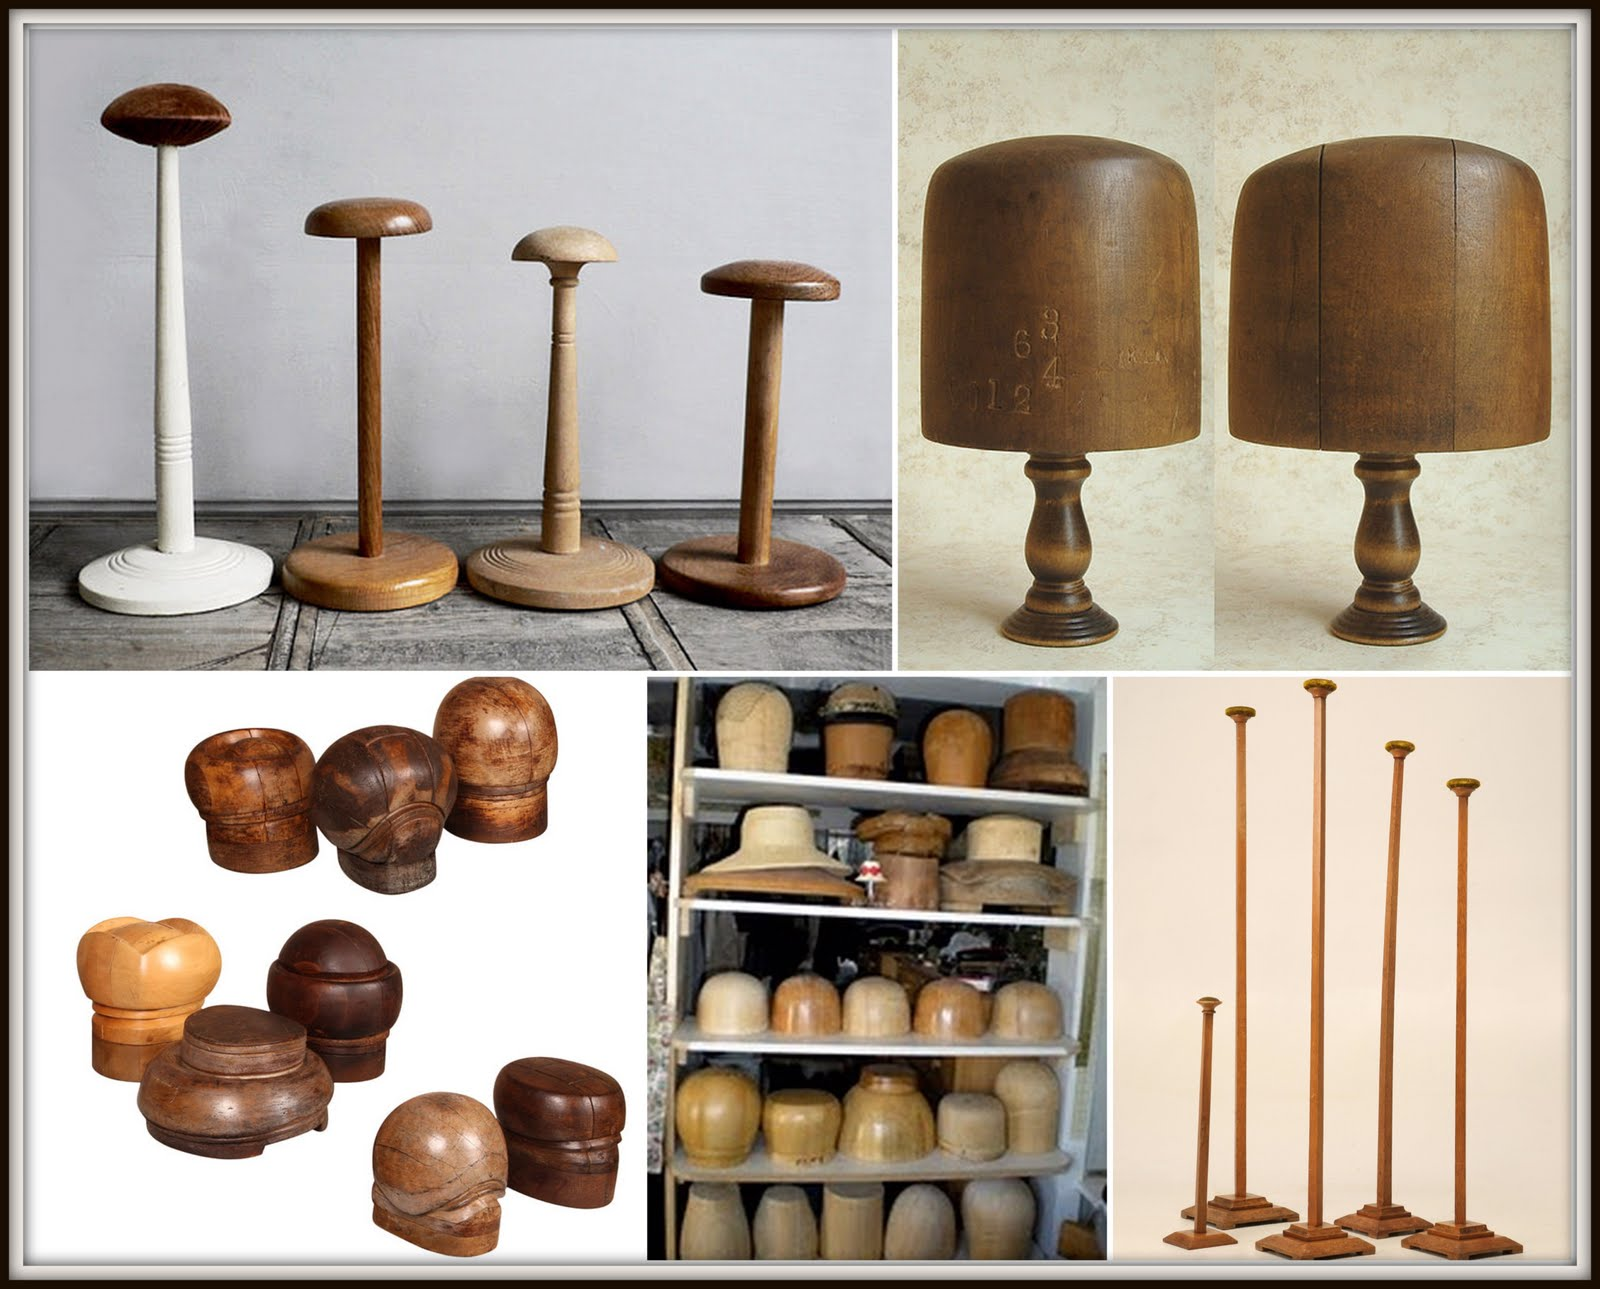 Tienda Vintage Decoracion Madrid ~ Decoracion tienda vintage tocados on Pinterest  Madrid, Room Dividers